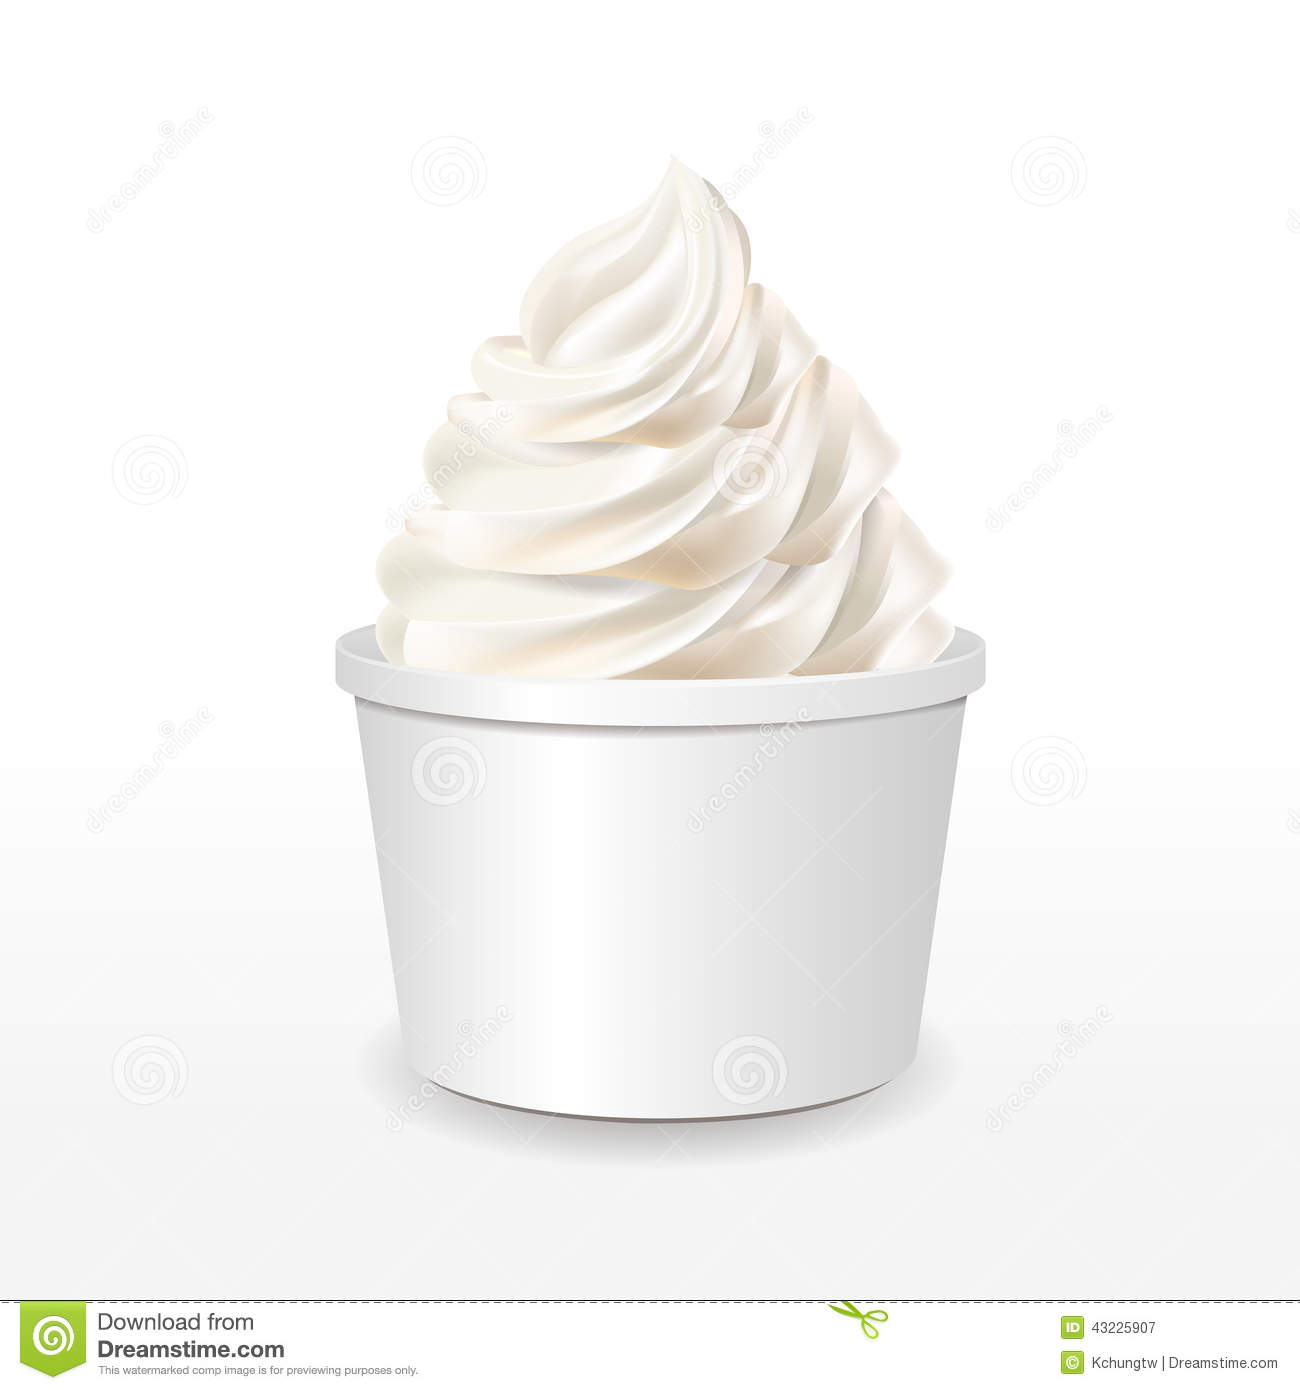 milk and ice cream essay It can seem as if people with diabetes have to forgo ice cream, but this is not the   click here to find out about yogurt, another dairy delight.